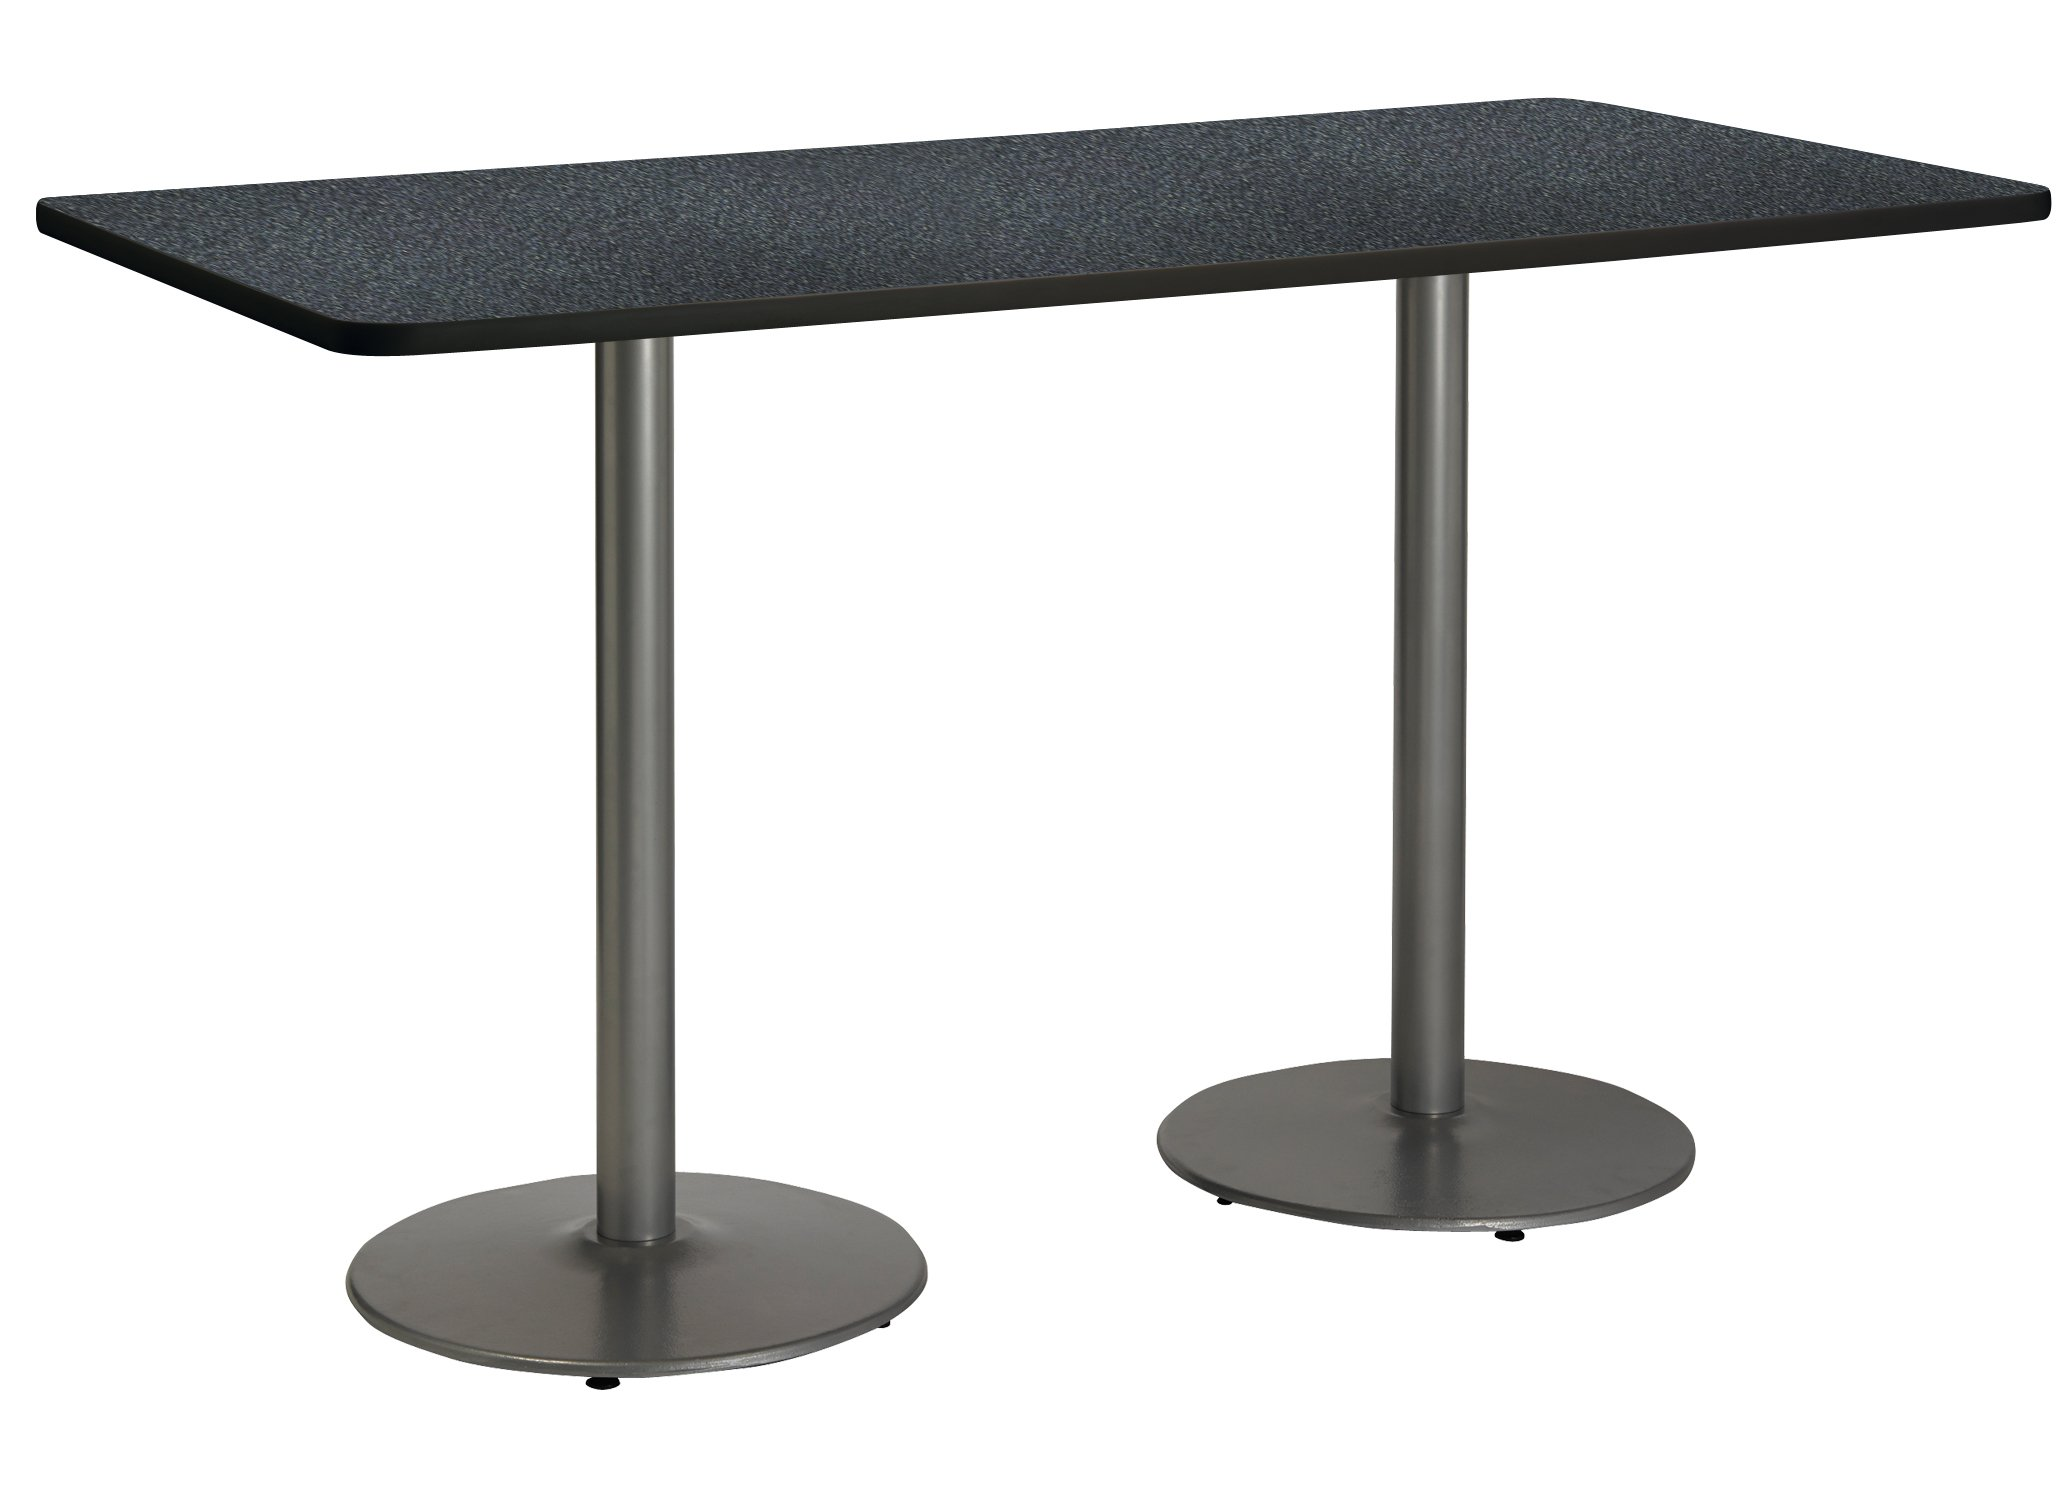 30'' x 72'' Pedestal Table with Graphite Nebula Top, Round Silver Base, Bistro Height by KFI Seating